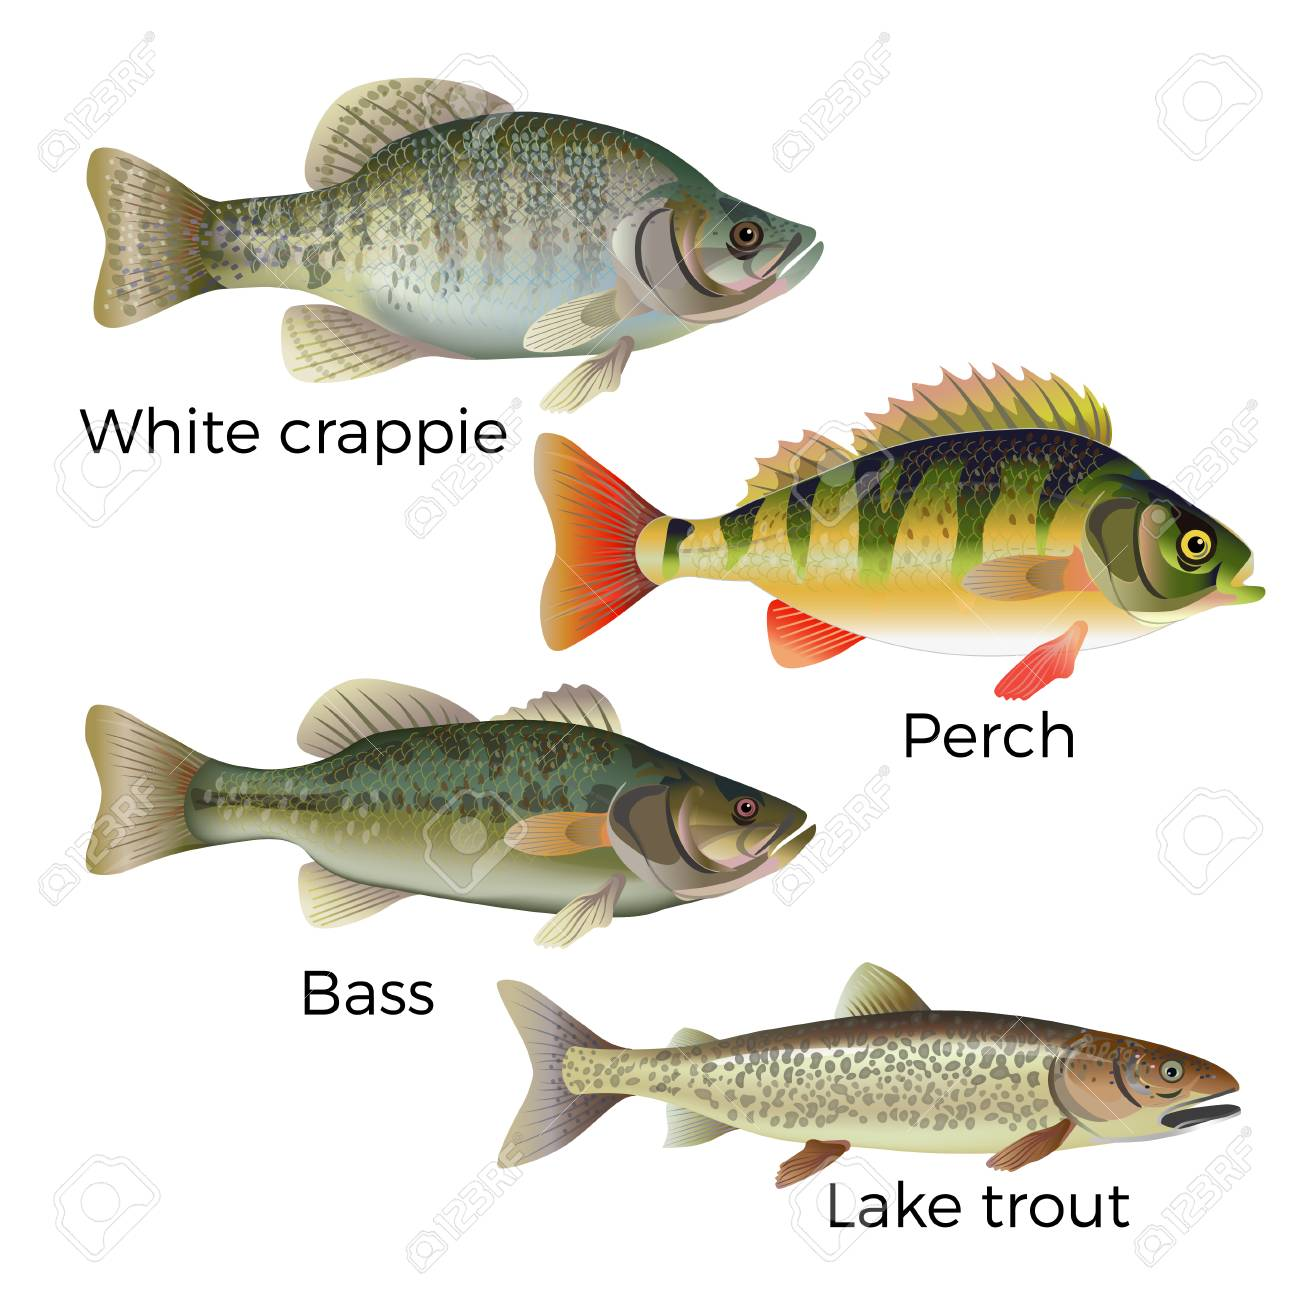 Freshwater fish set - white crappie, perch, bass and lake trout